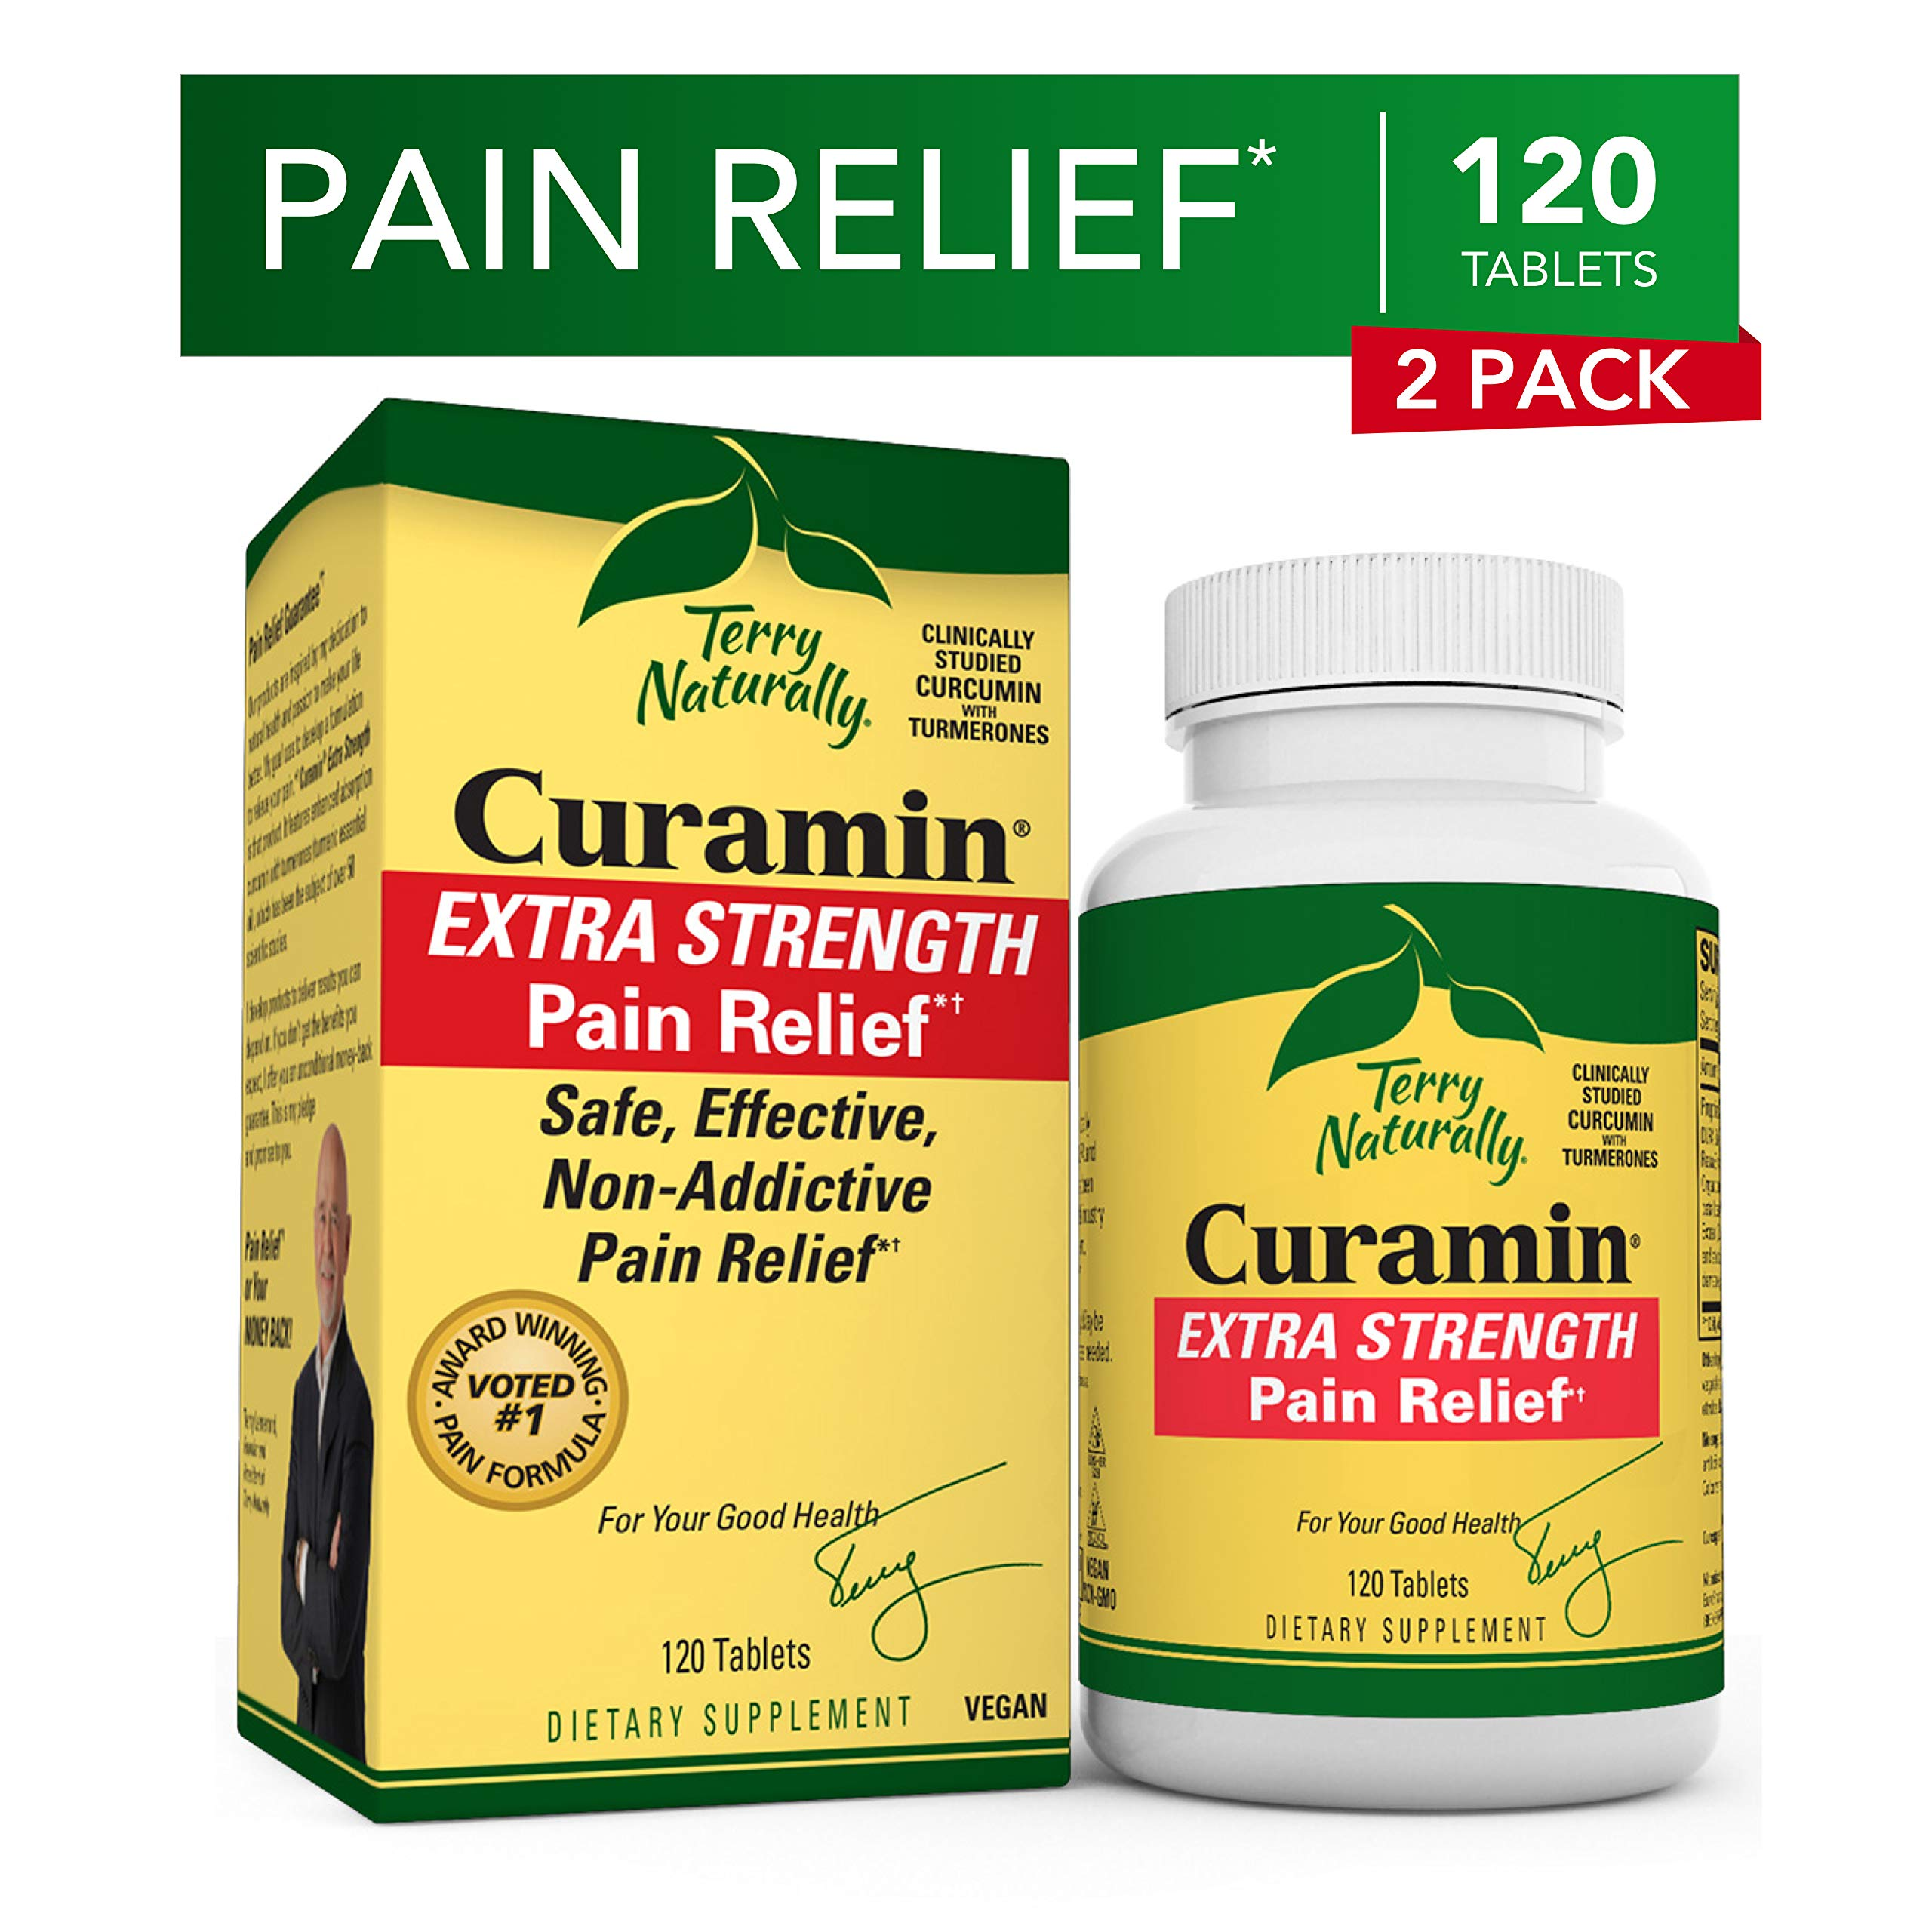 Terry Naturally Curamin Extra Strength (2 Pack) - 120 Vegan Tablets - Non-Addictive Pain Relief Supplement with Curcumin, Boswellia & DLPA - Non-GMO, Gluten-Free - 80 Total Servings